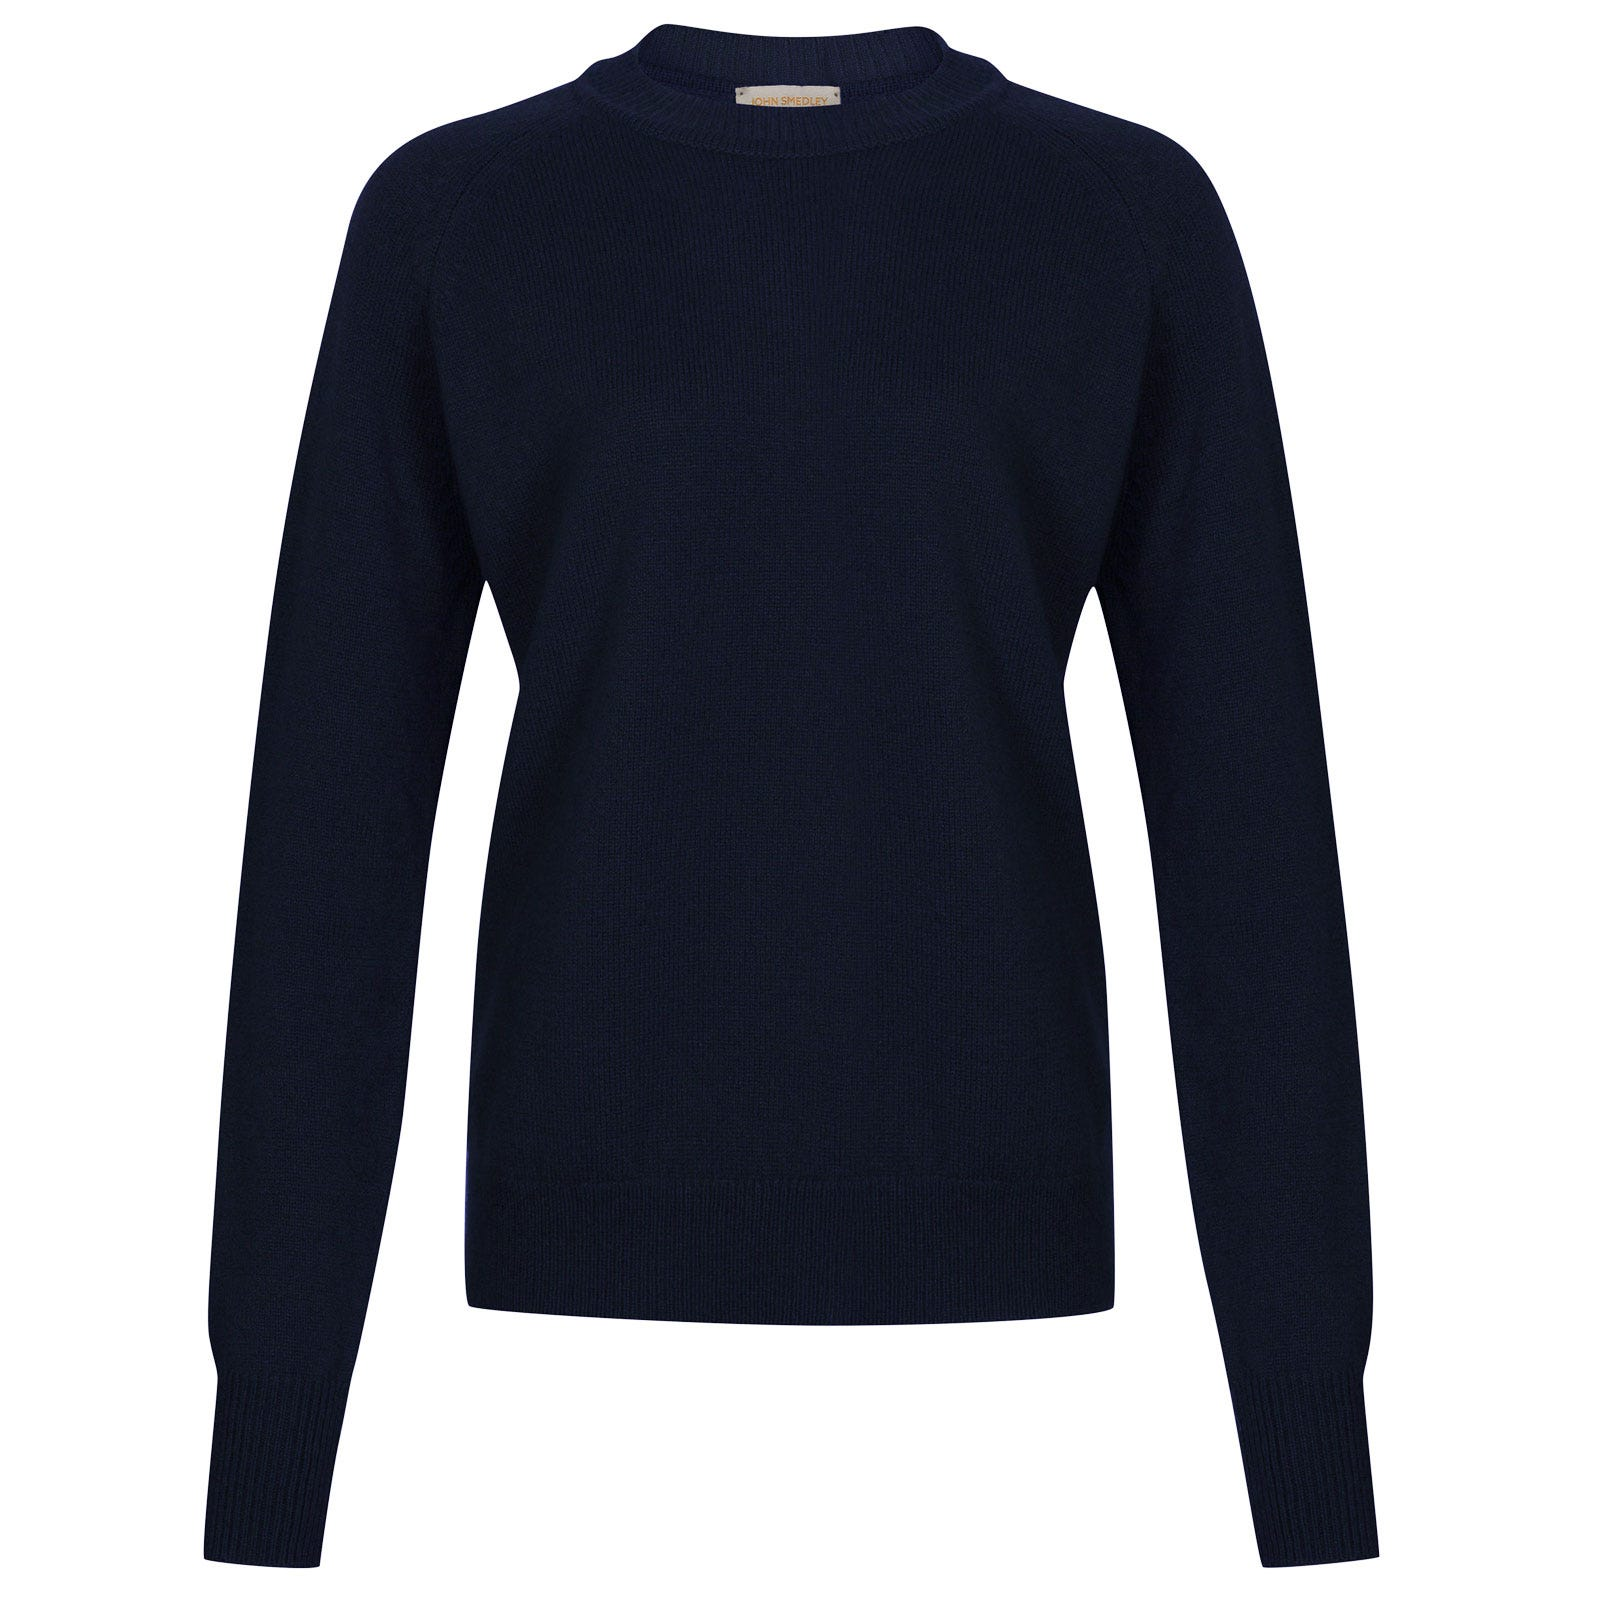 John Smedley dillon Merino Wool & Cashmere Sweater in Midnight-S